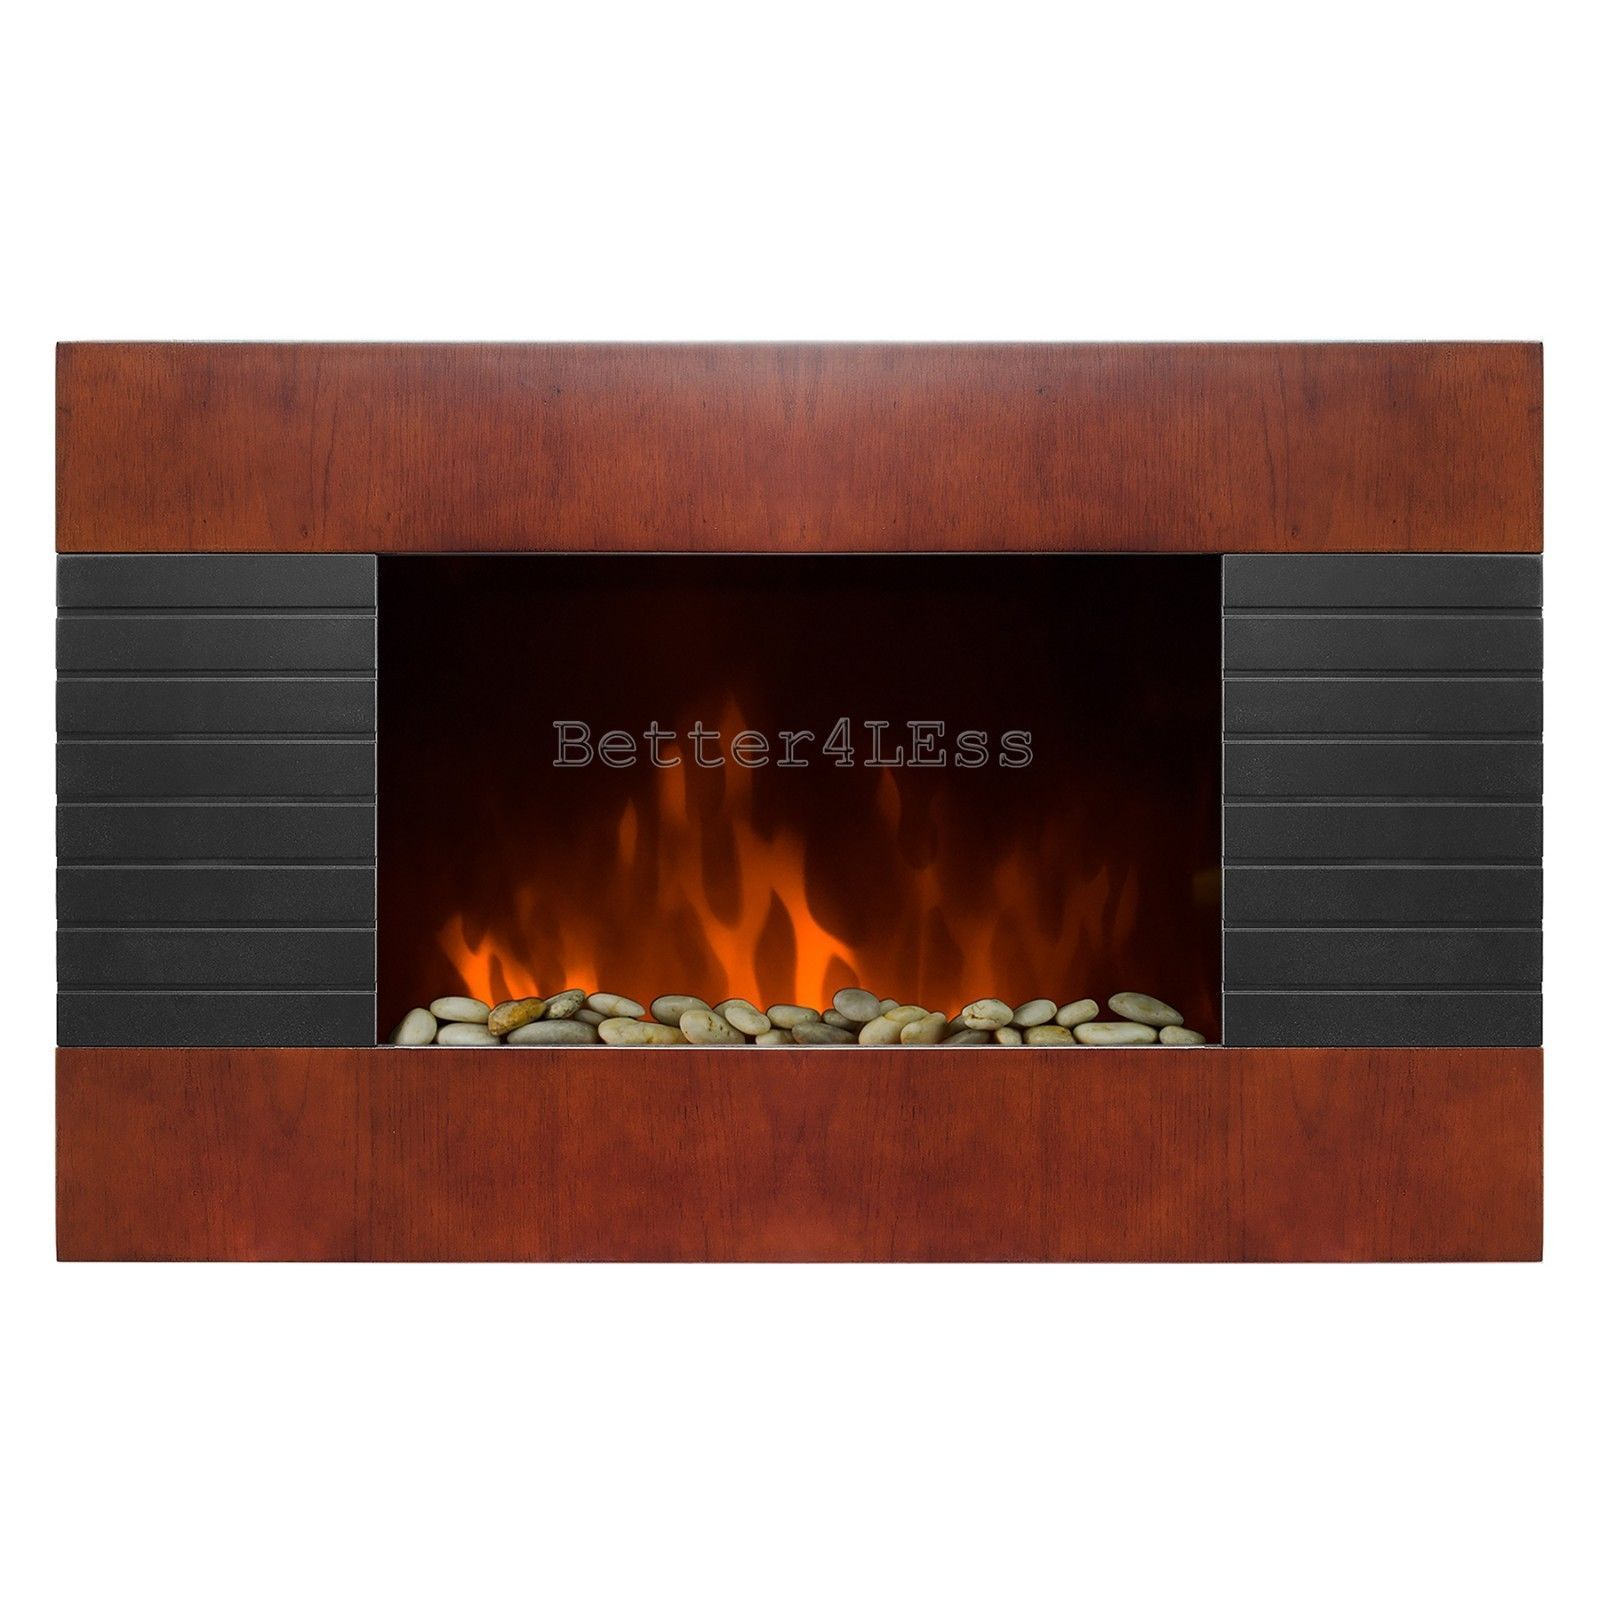 Wall Mount Electric Fireplace Sea Pinterest Wall mount